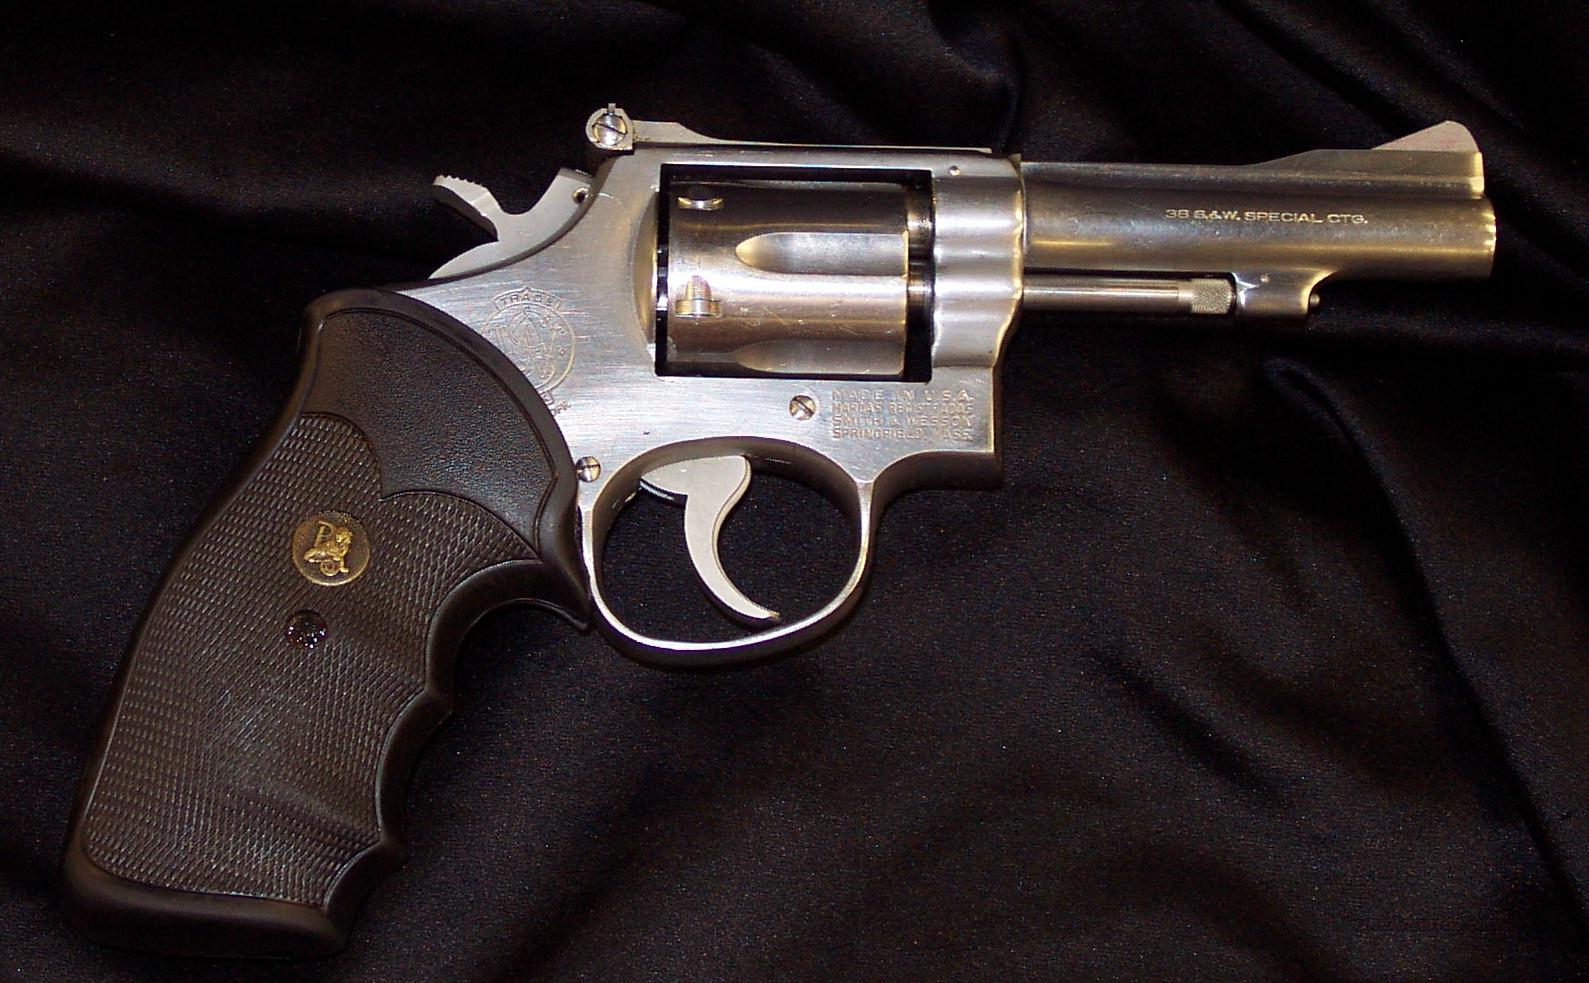 Smith & Wesson Model 67  Guns > Pistols > Smith & Wesson Revolvers > Full Frame Revolver